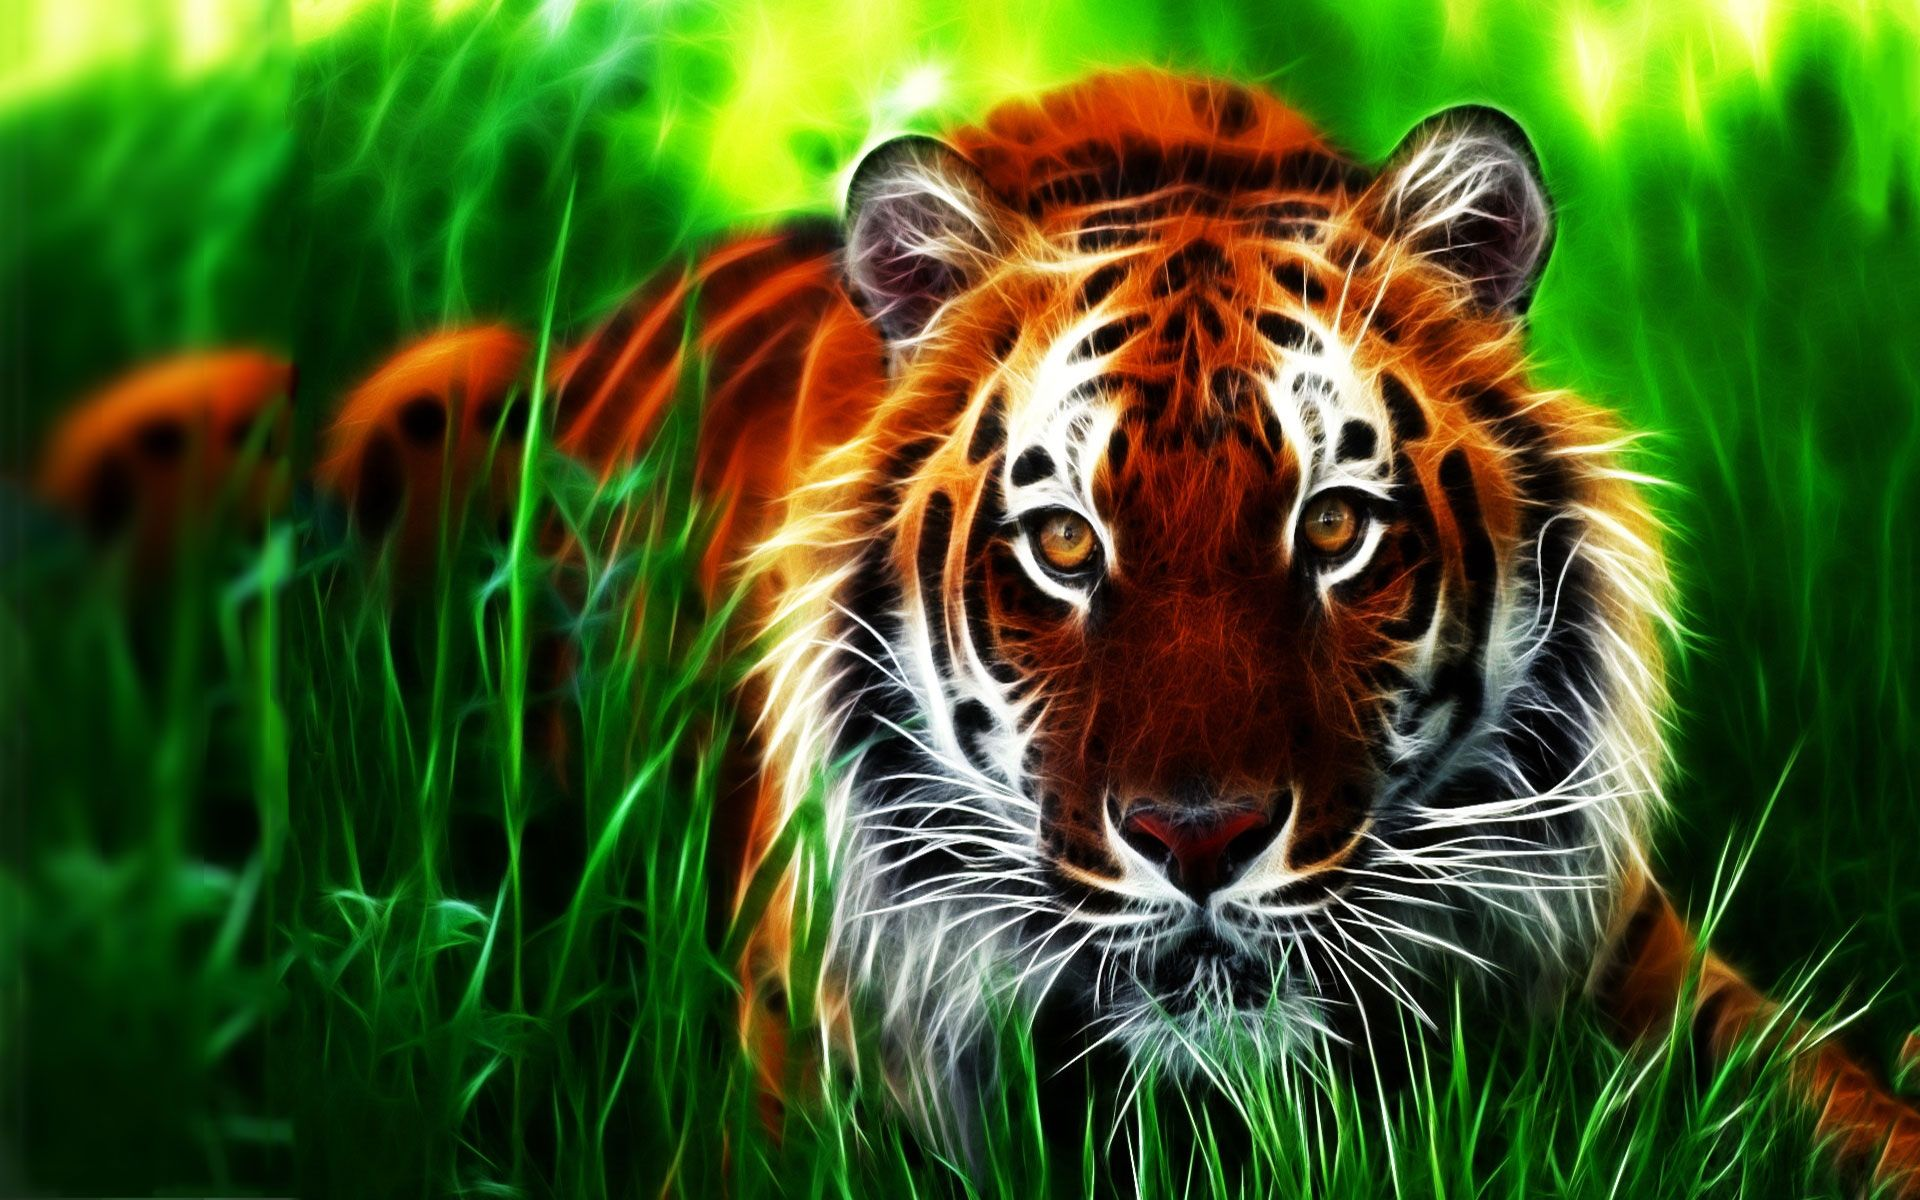 Beautiful Animal Wallpapers HD Pictures One HD Wallpaper 19201200 1920x1200